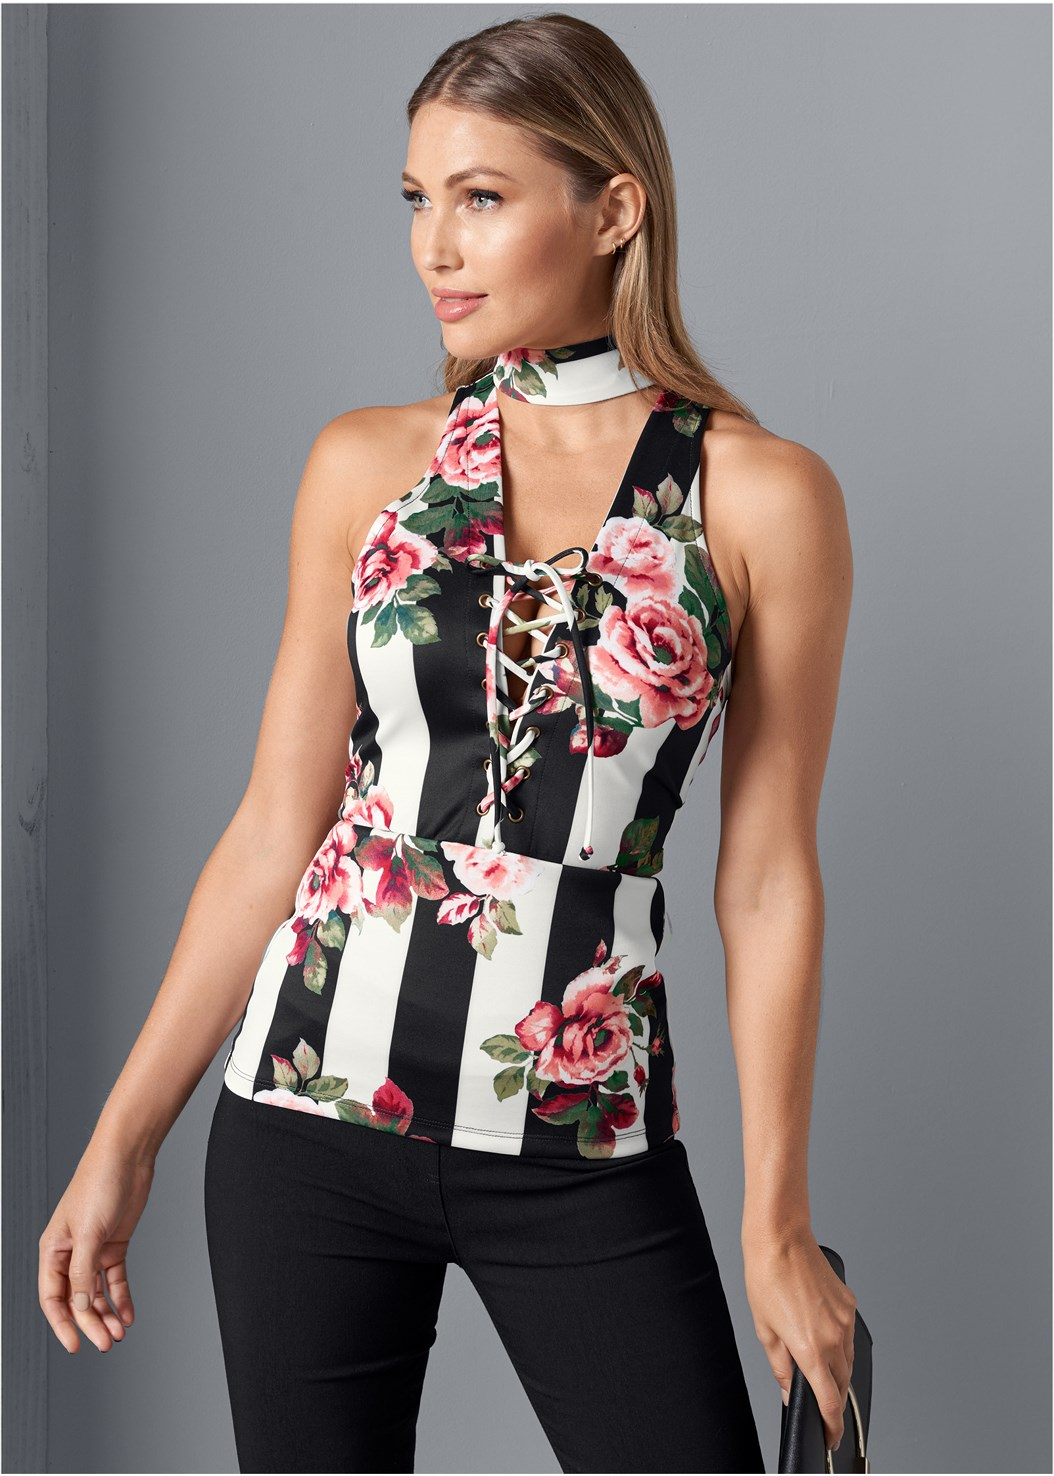 Printed Lace Up Top,Mid Rise Slimming Stretch Jeggings,Asymmetrical Strappy Heels